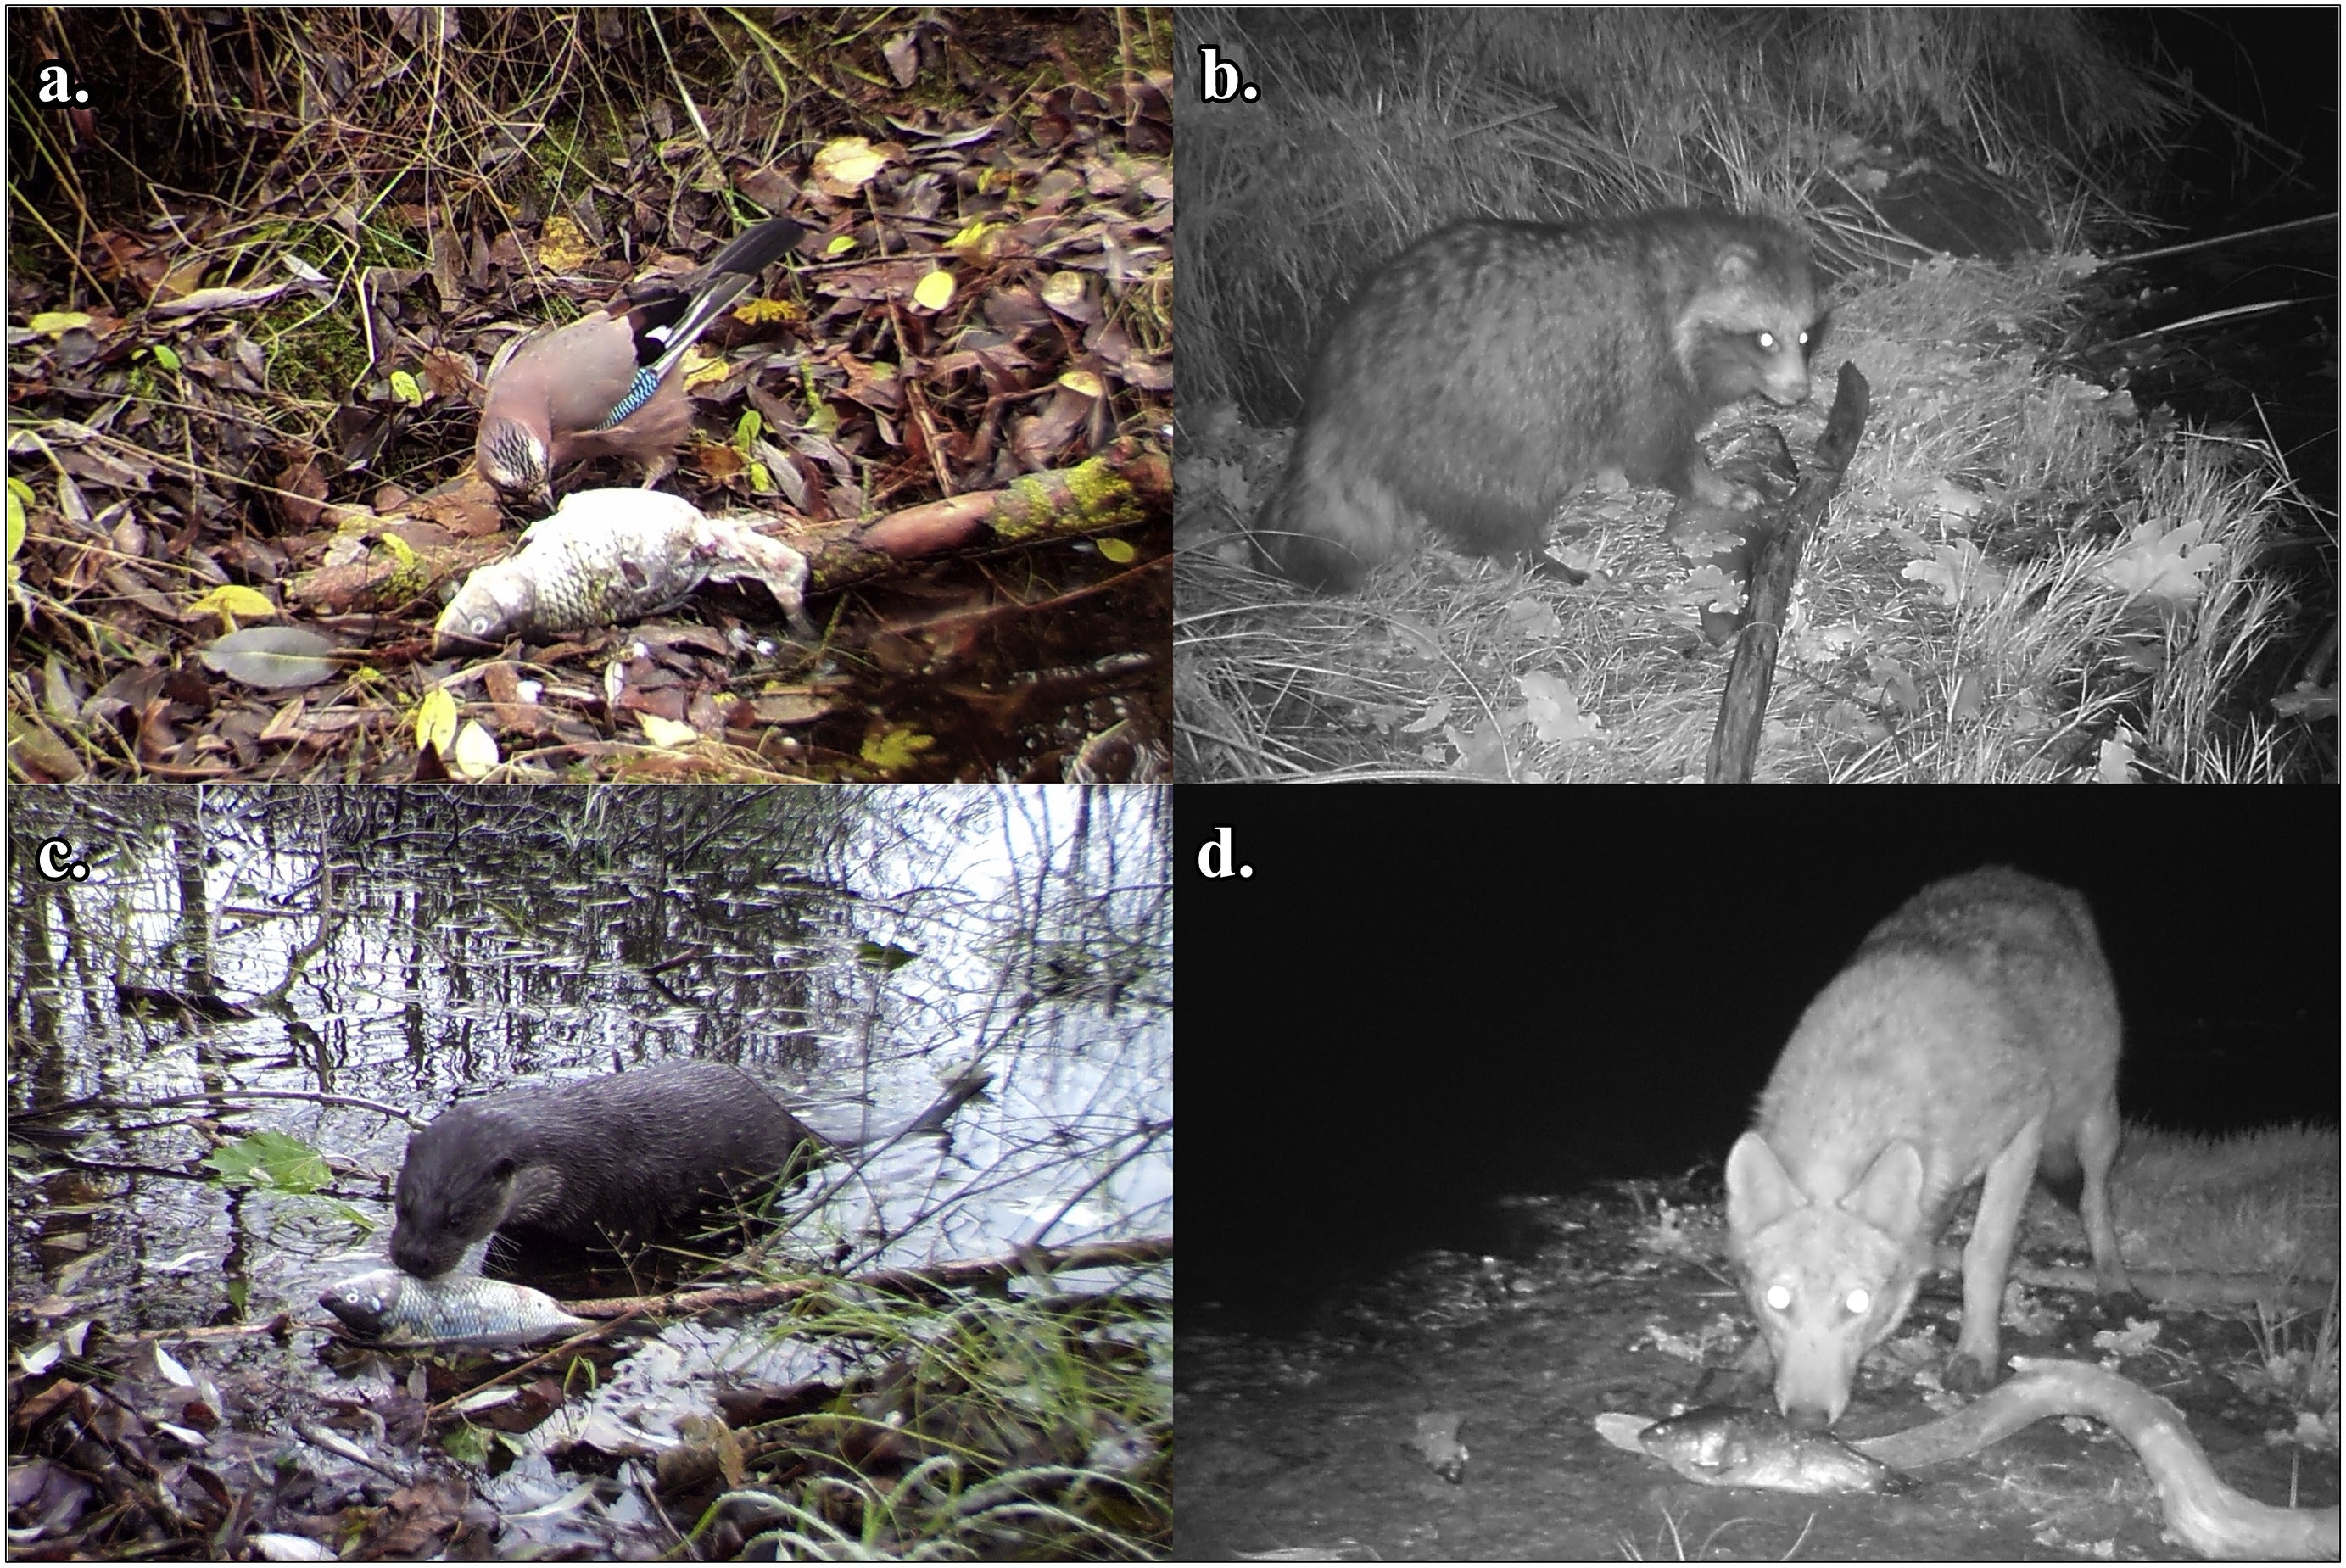 Ten mammalian and fiveavian specieswere documented scavenging fish carcasses in the Chernobyl Exclusion Zone including Eurasian jays (a), raccoon dogs (b),Eurasianotters(c), and wolves(d). (Univerisity of Georgia)